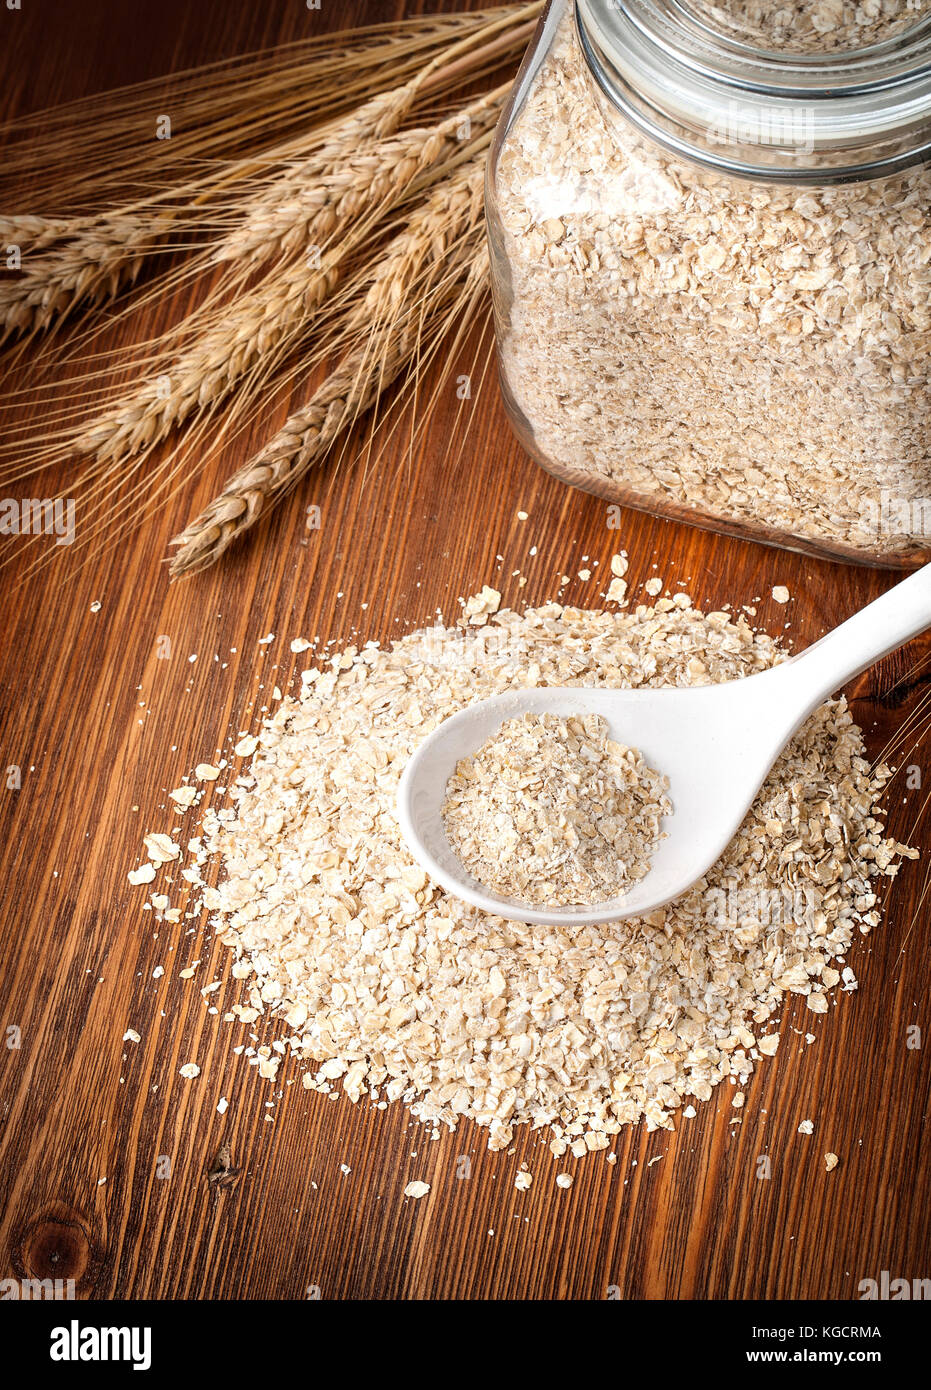 organic and nutritious oatmeal, glass jar,white spoon and ears of corn onwooden  background, - Stock Image